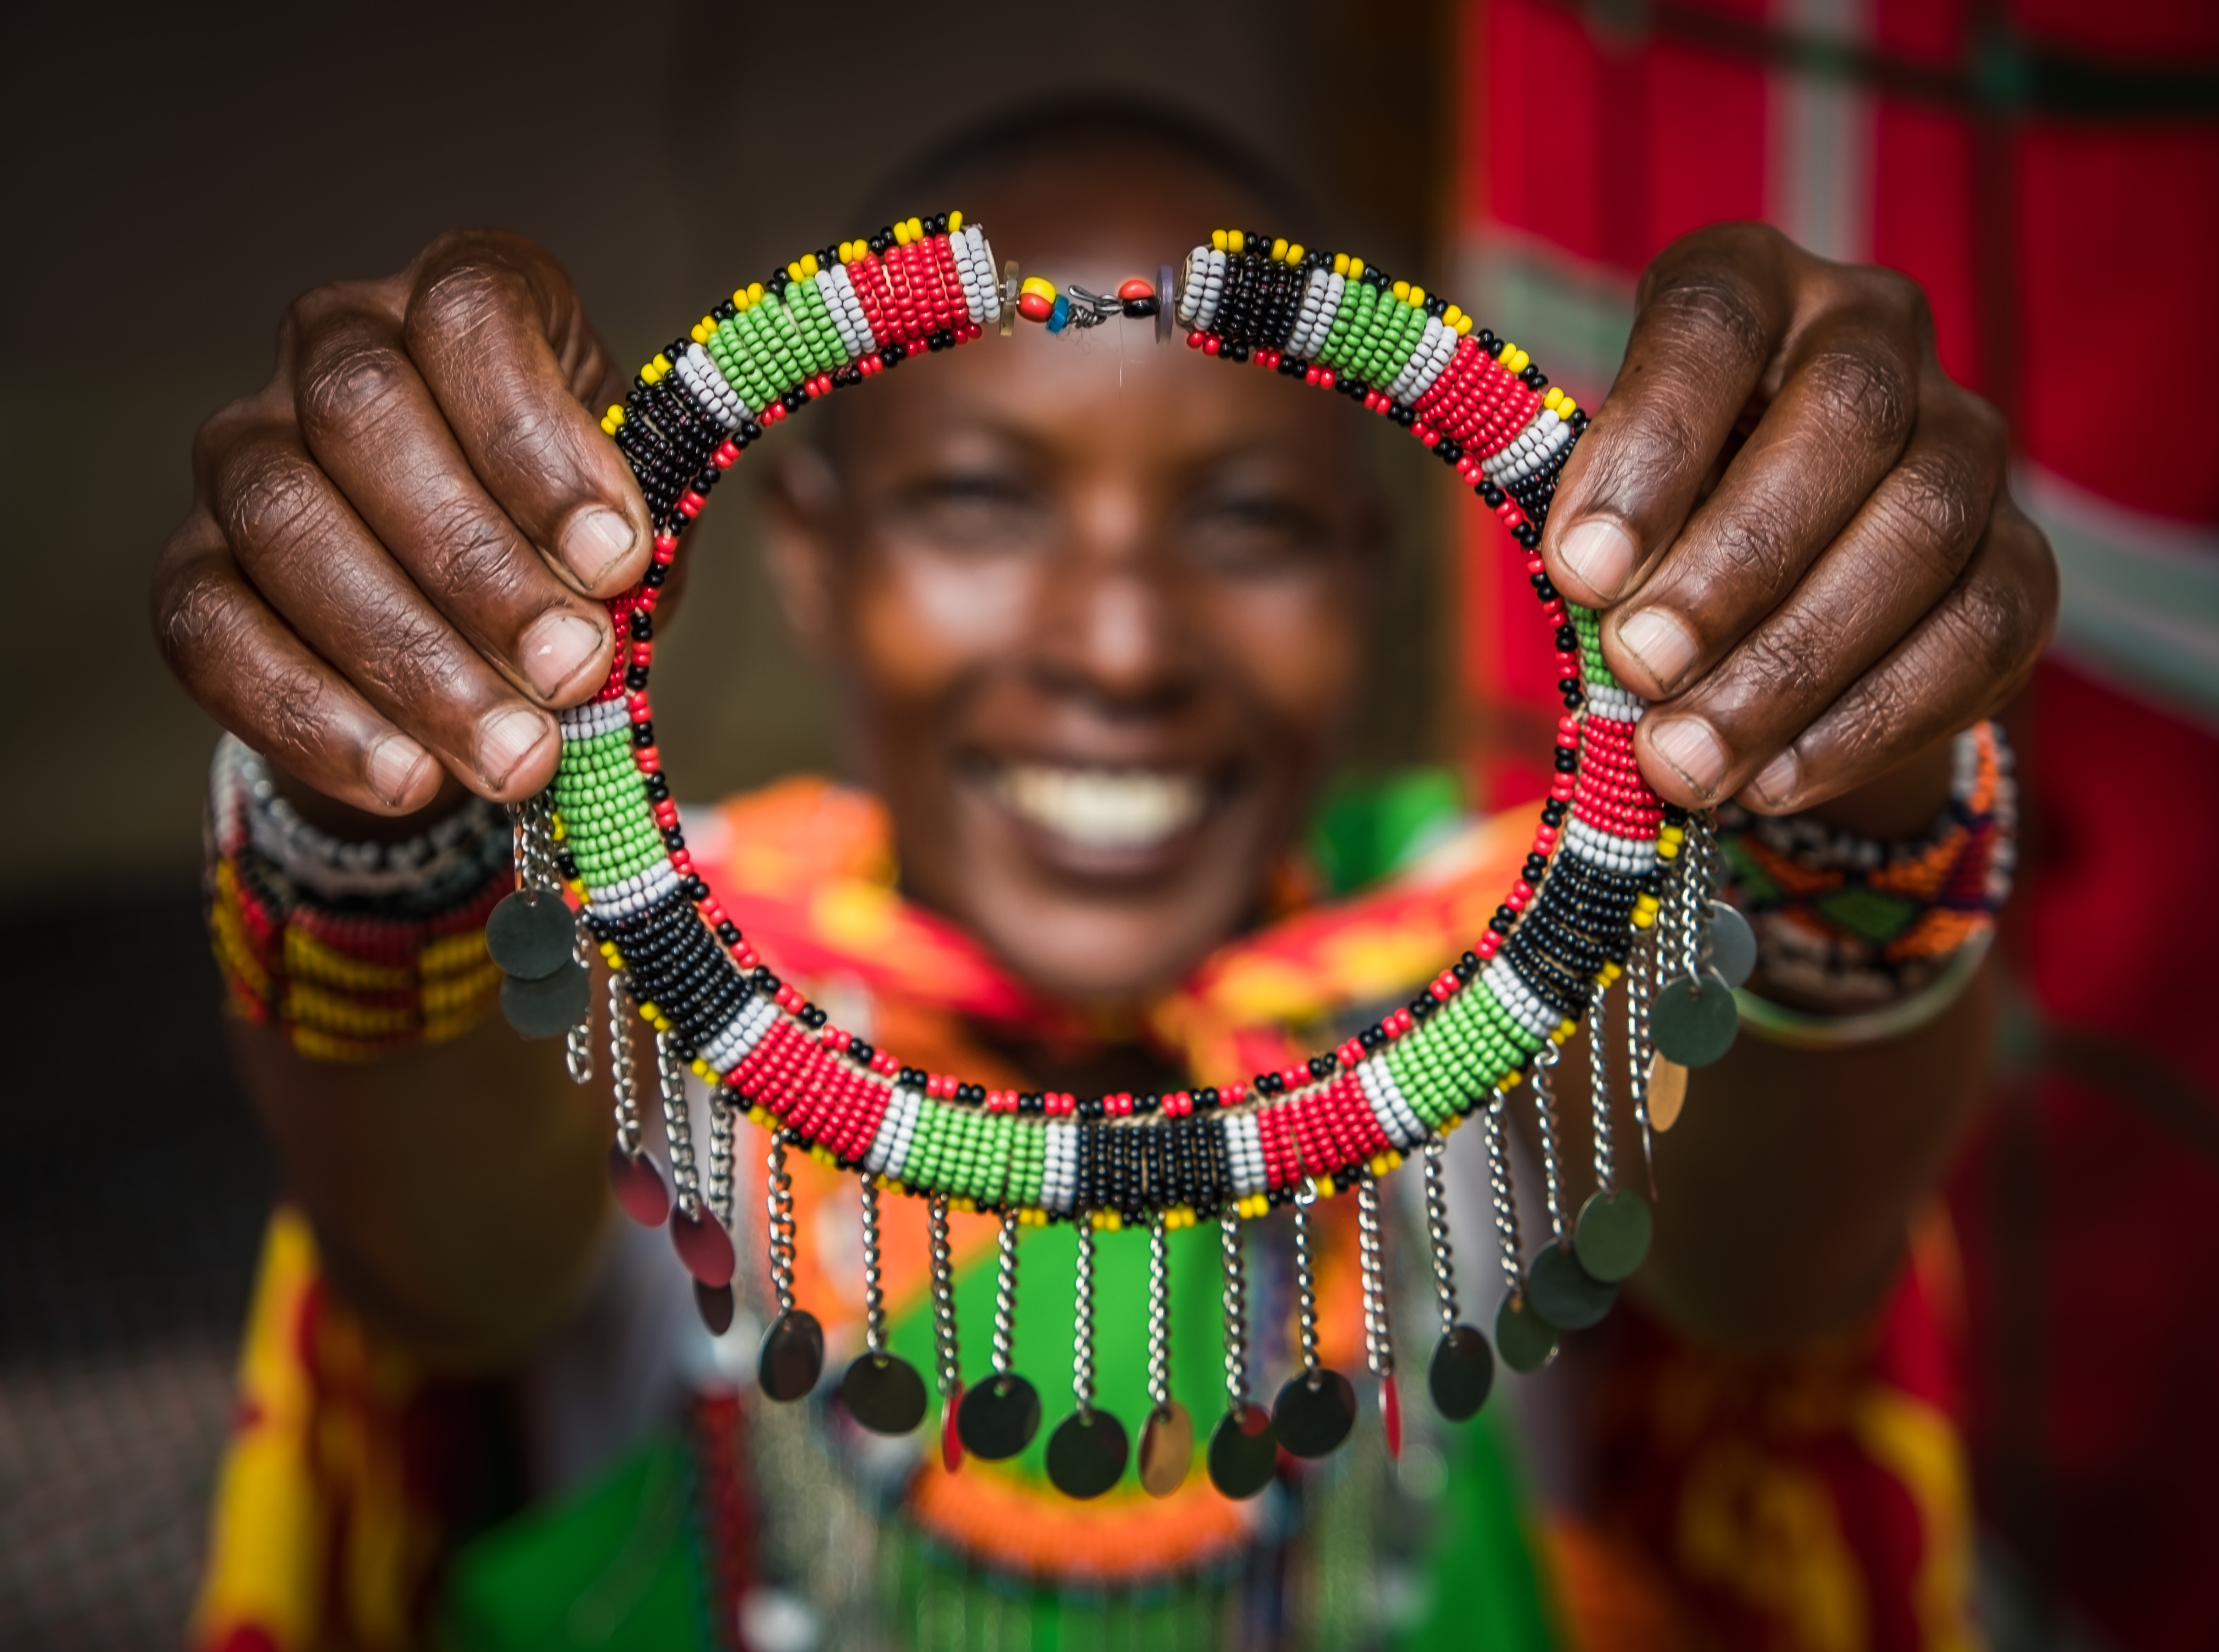 Woman holding up beads